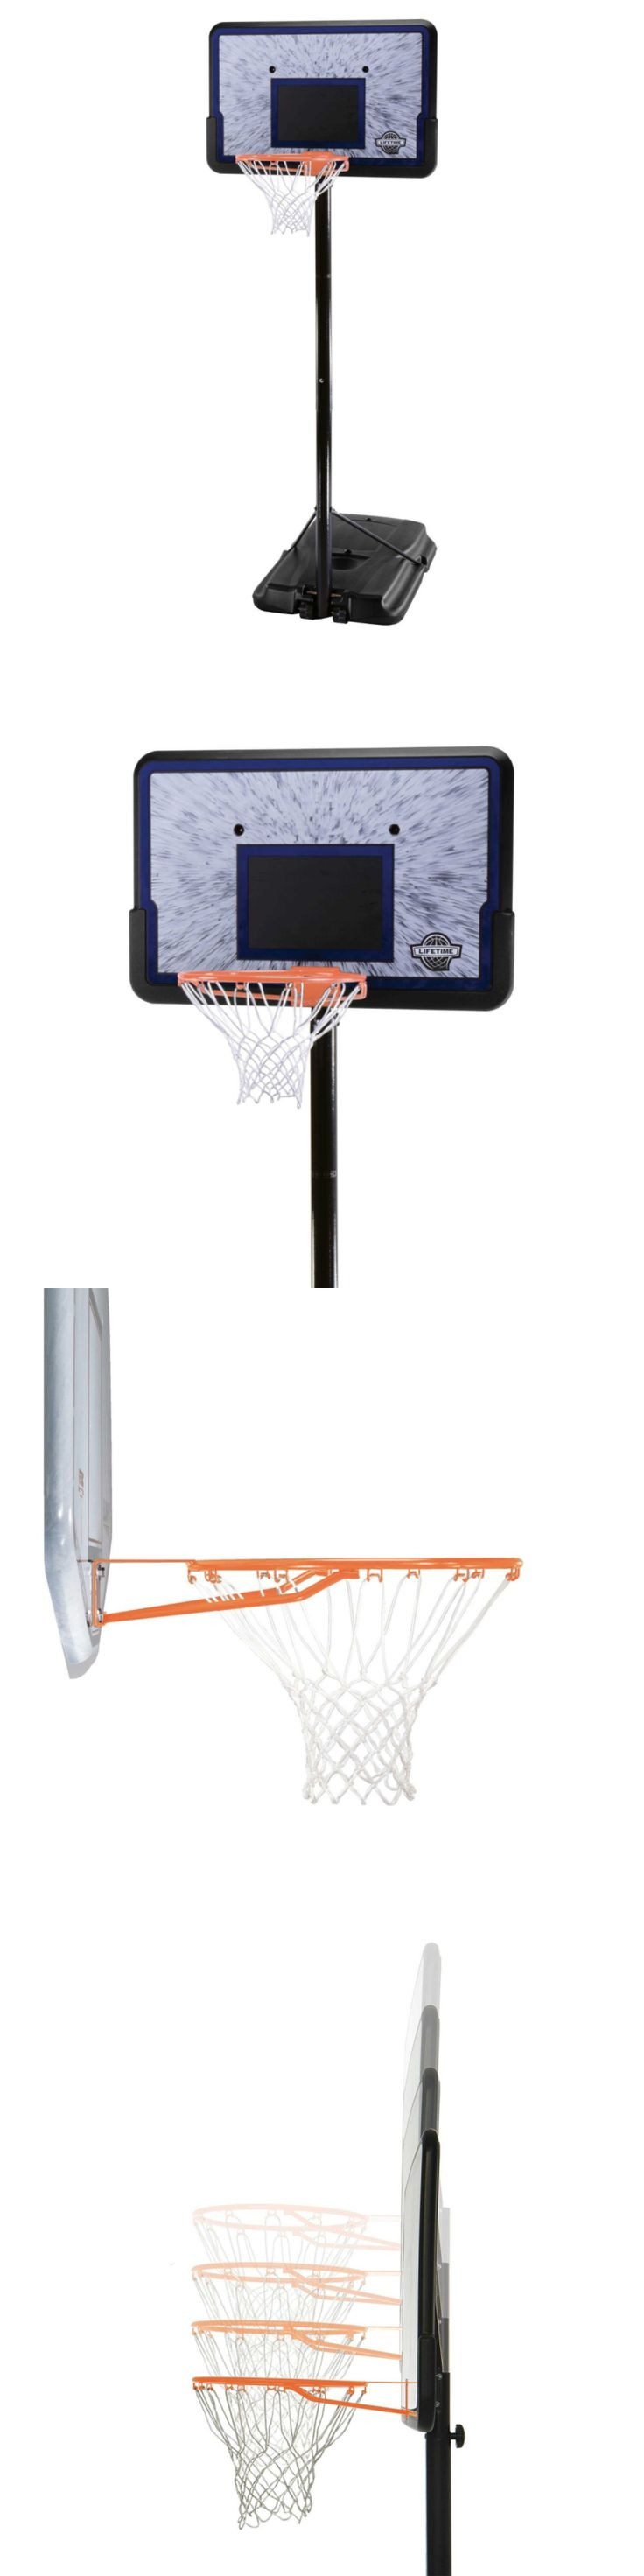 Backboard Systems 21196: Lifetime 1221 Pro Court Height Adjustable Portable Basketball System, 44 Inch Ba BUY IT NOW ONLY: $123.99